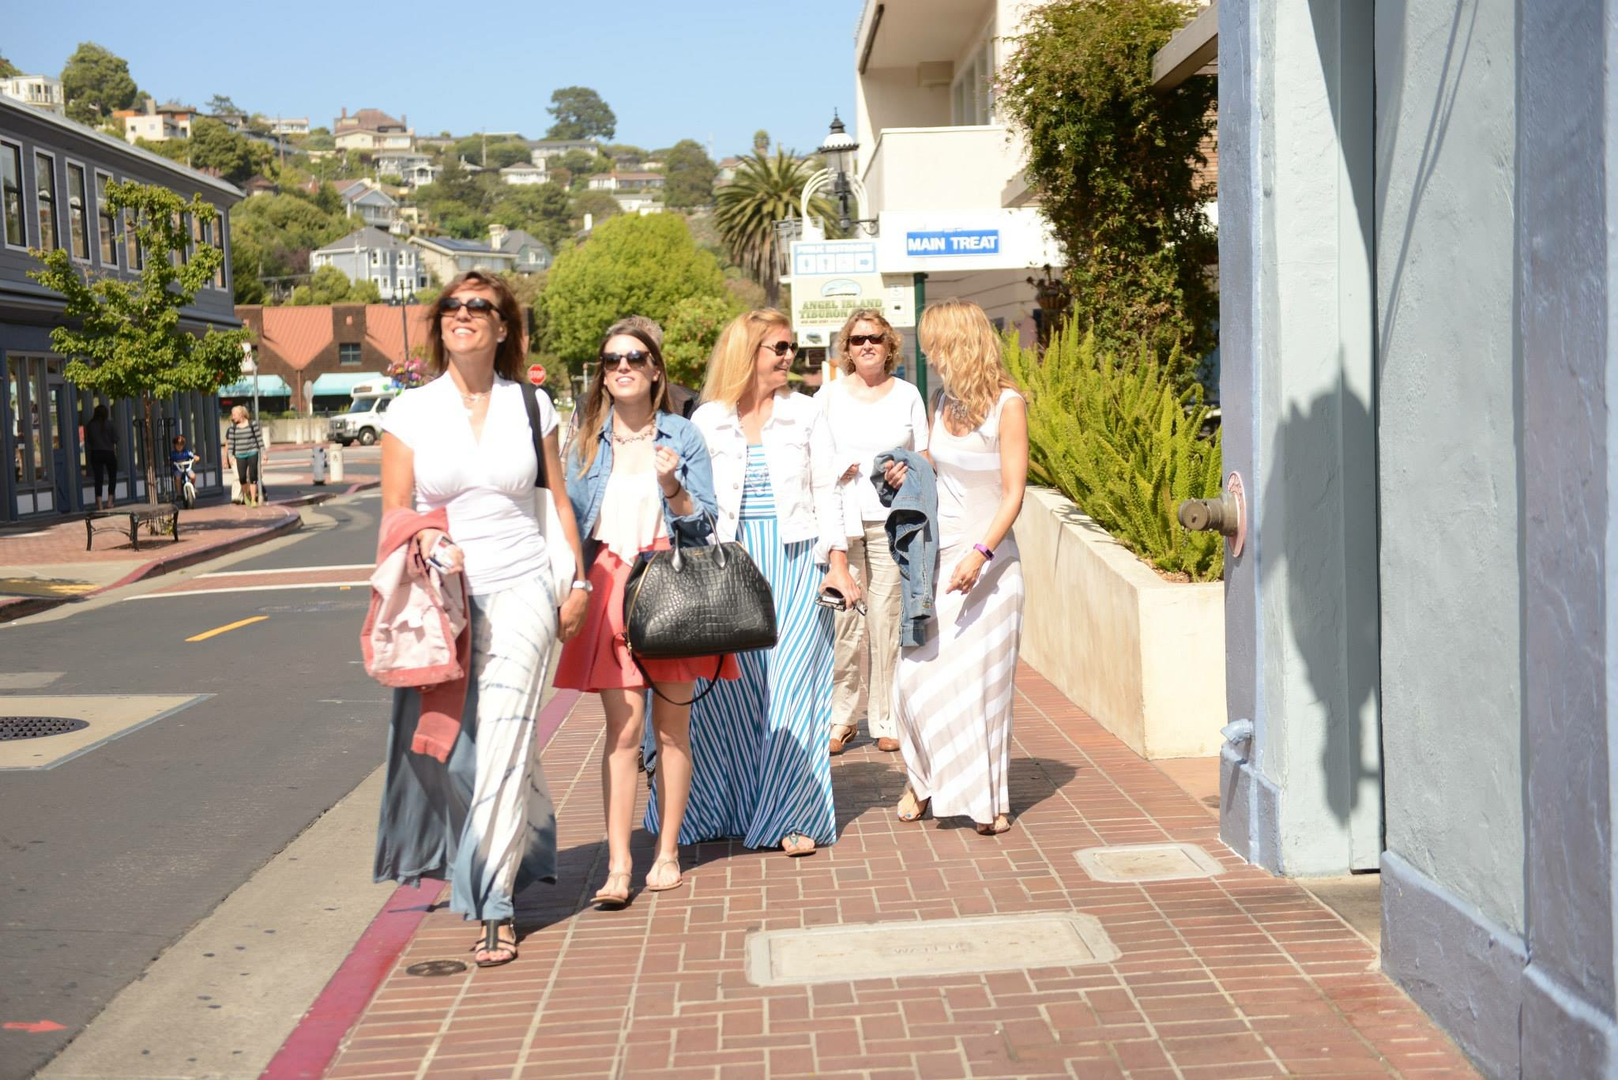 Group of Friends Walking the Streets of Marin County